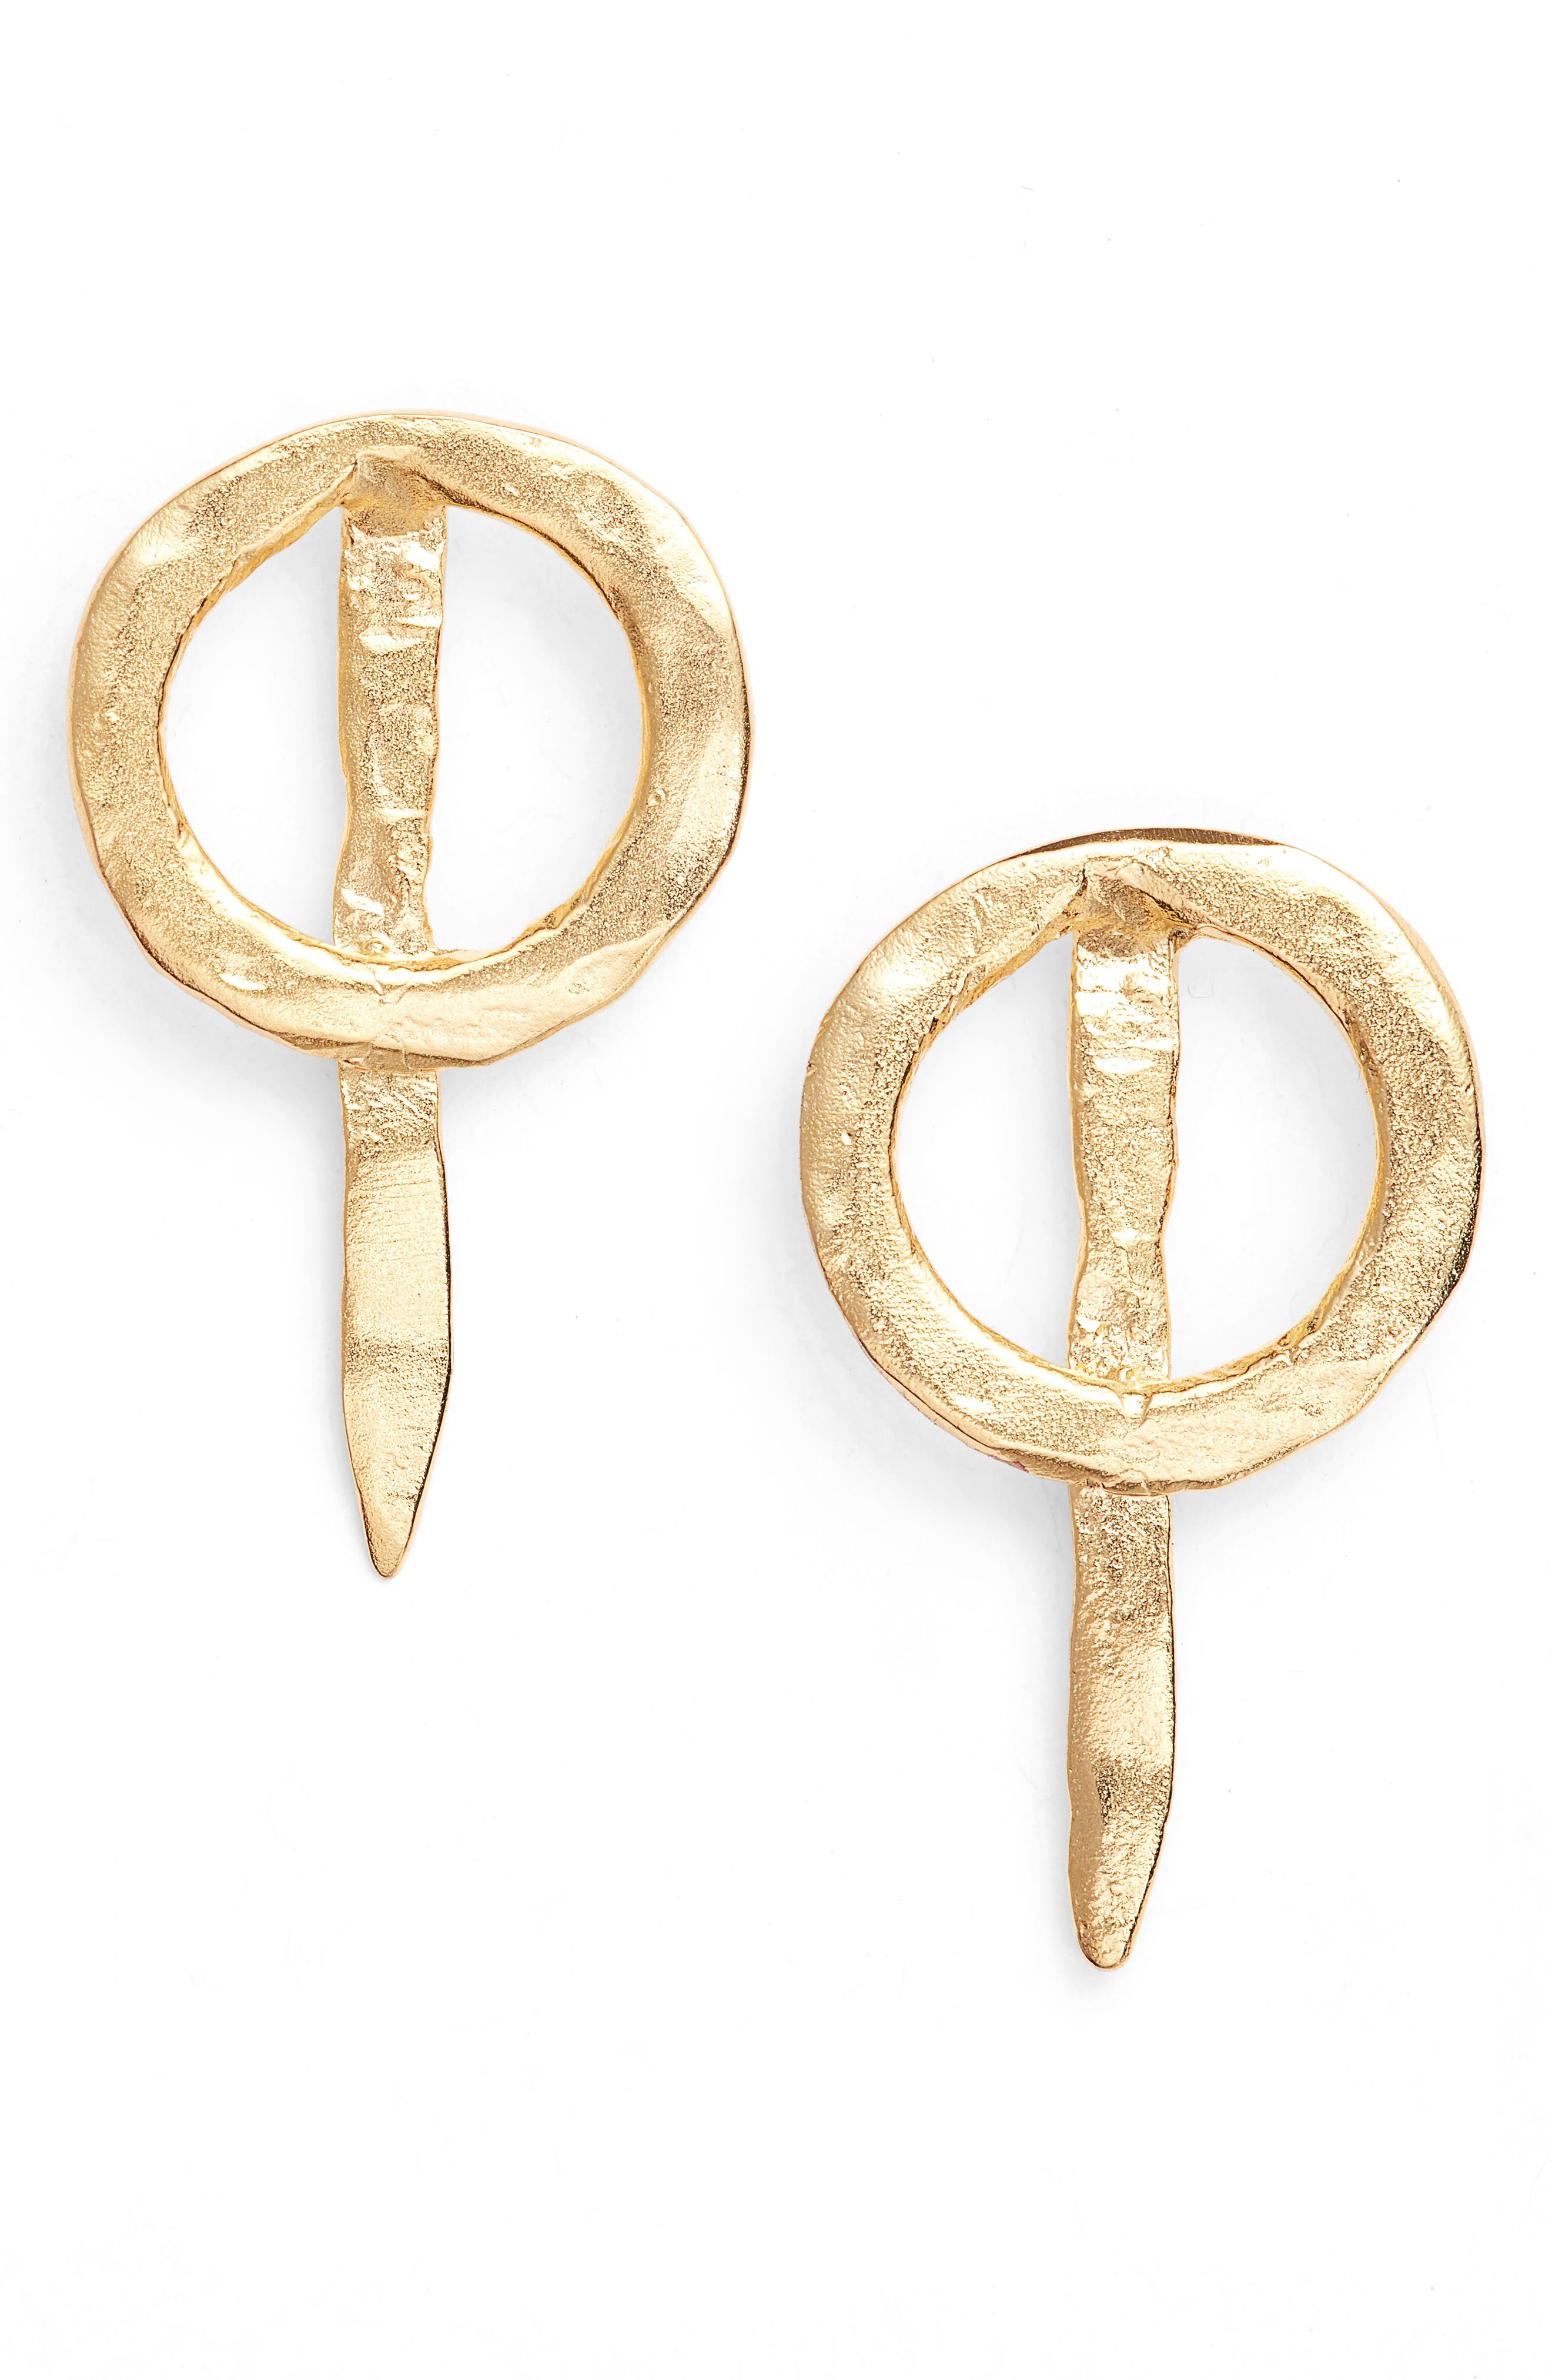 Thorn Drop Earrings,                         Main,                         color, Gold